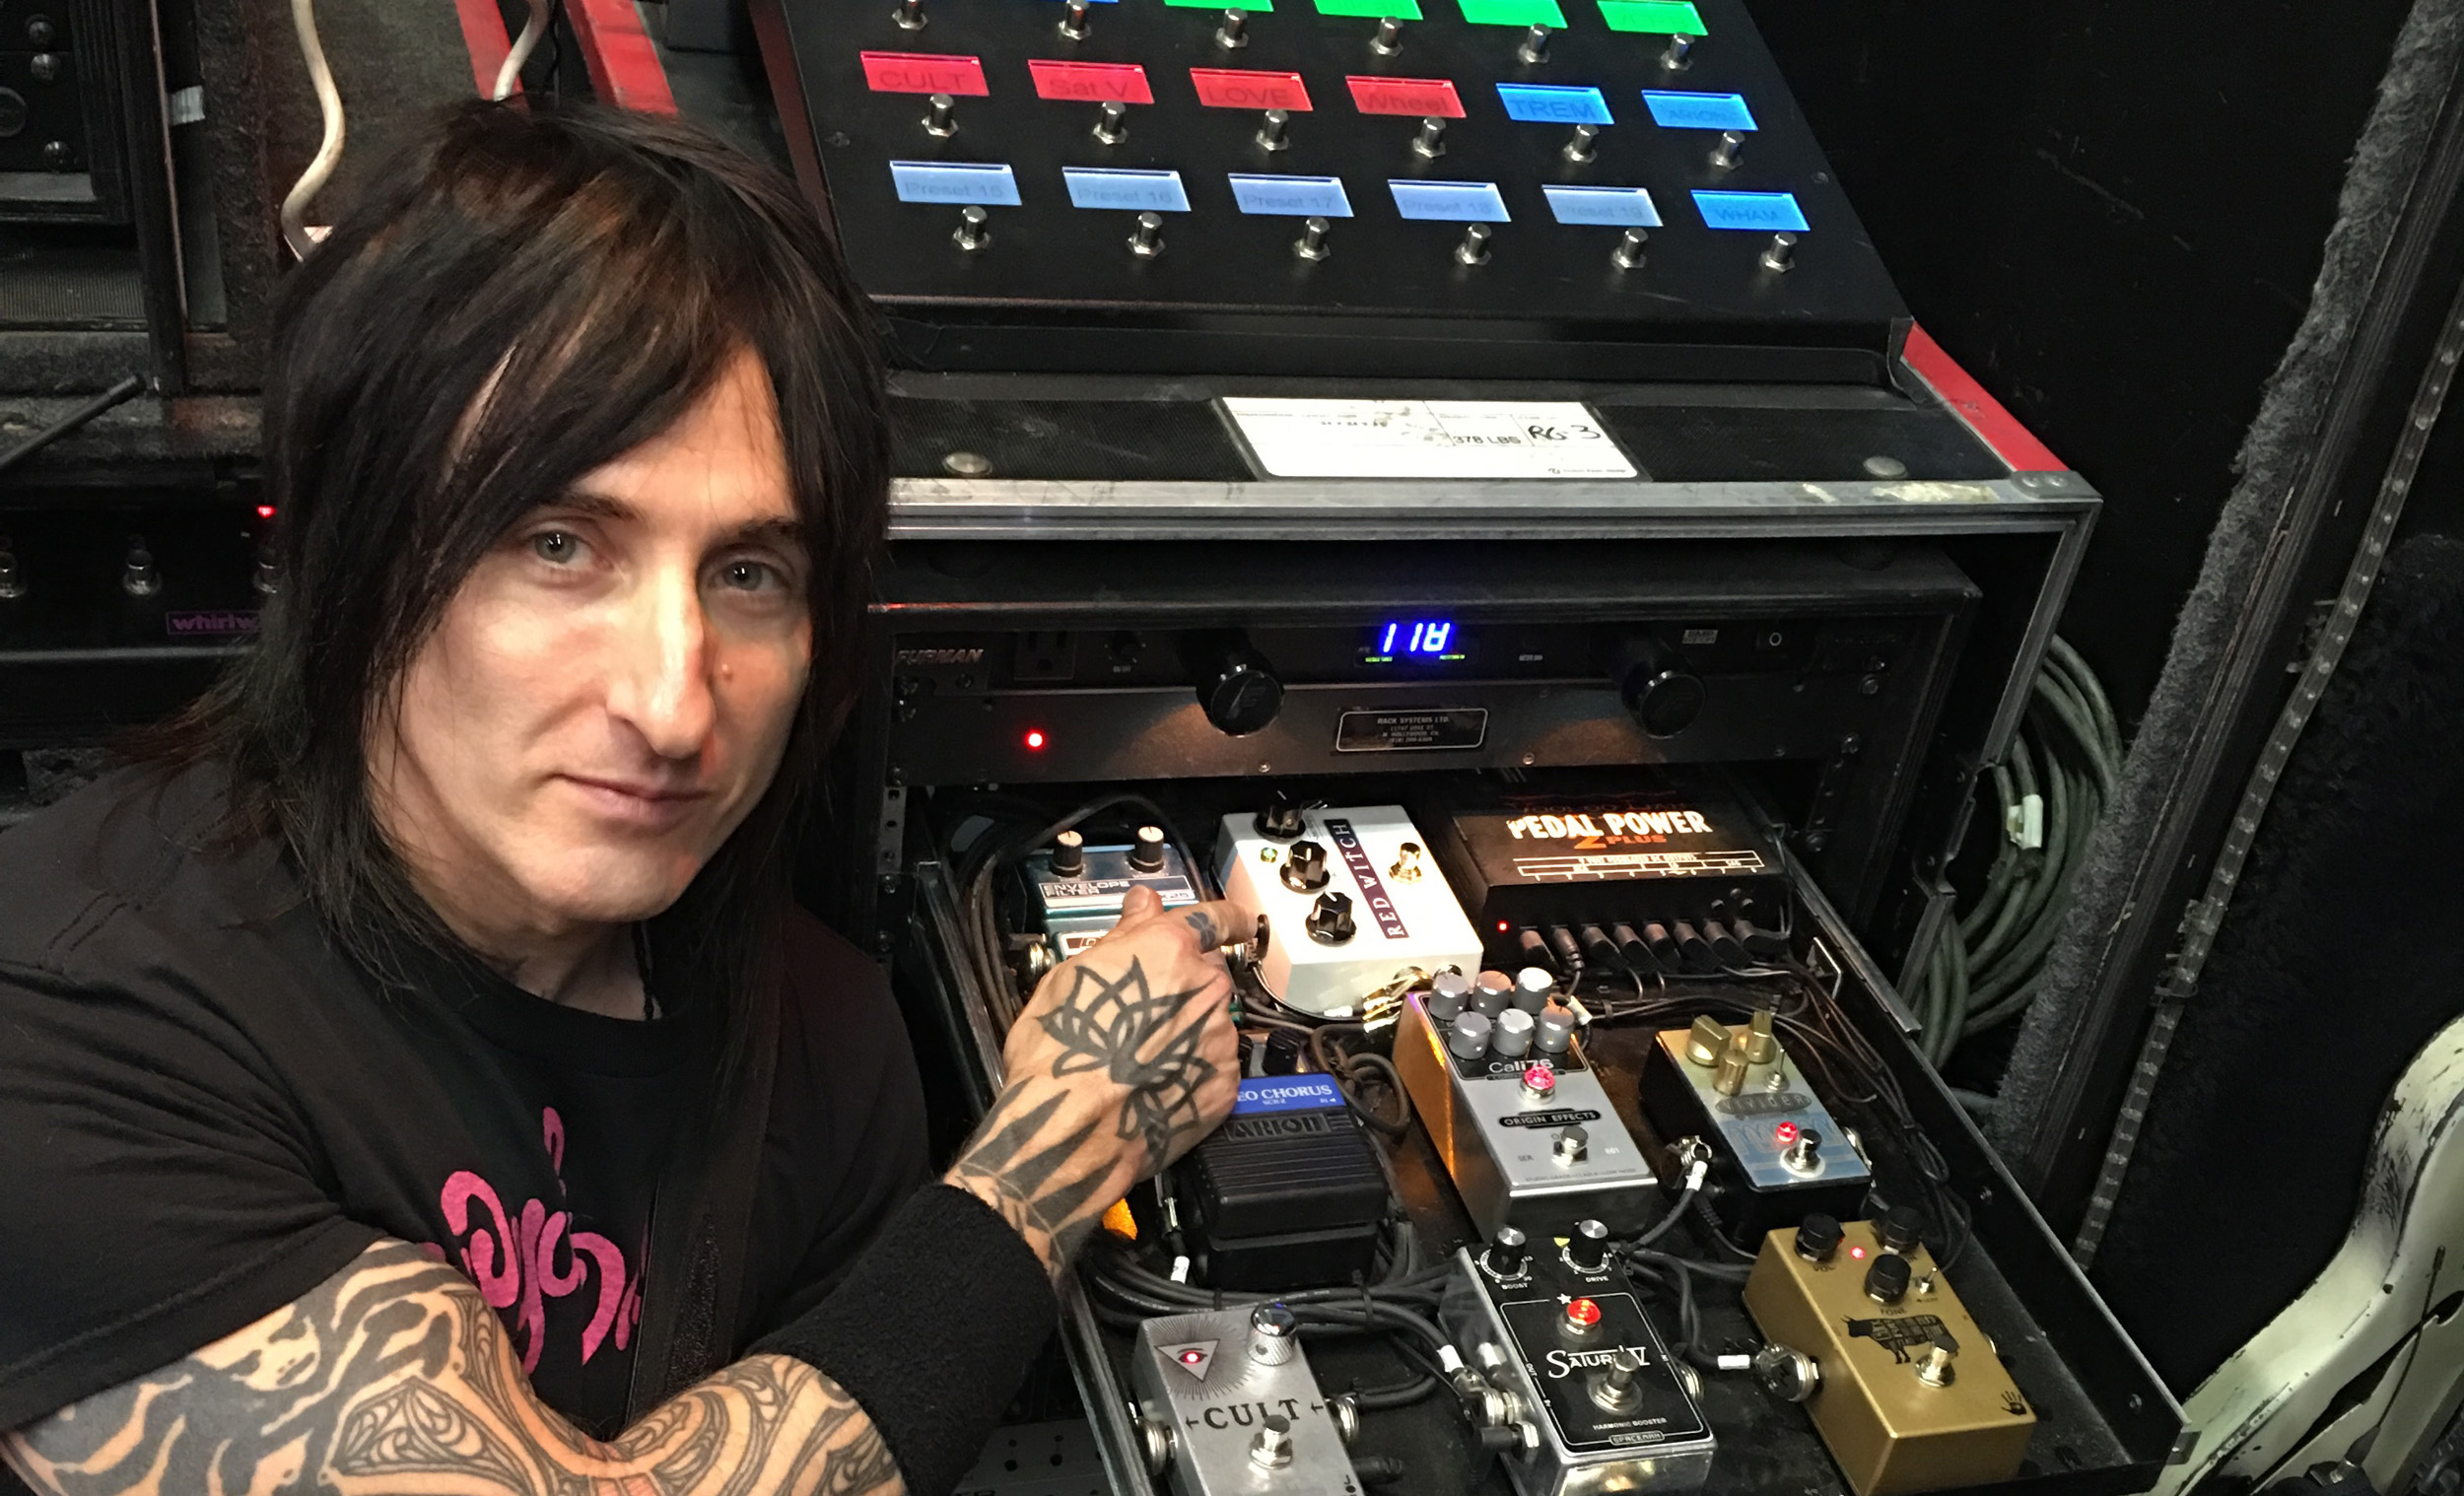 richardfortus_2500.jpg